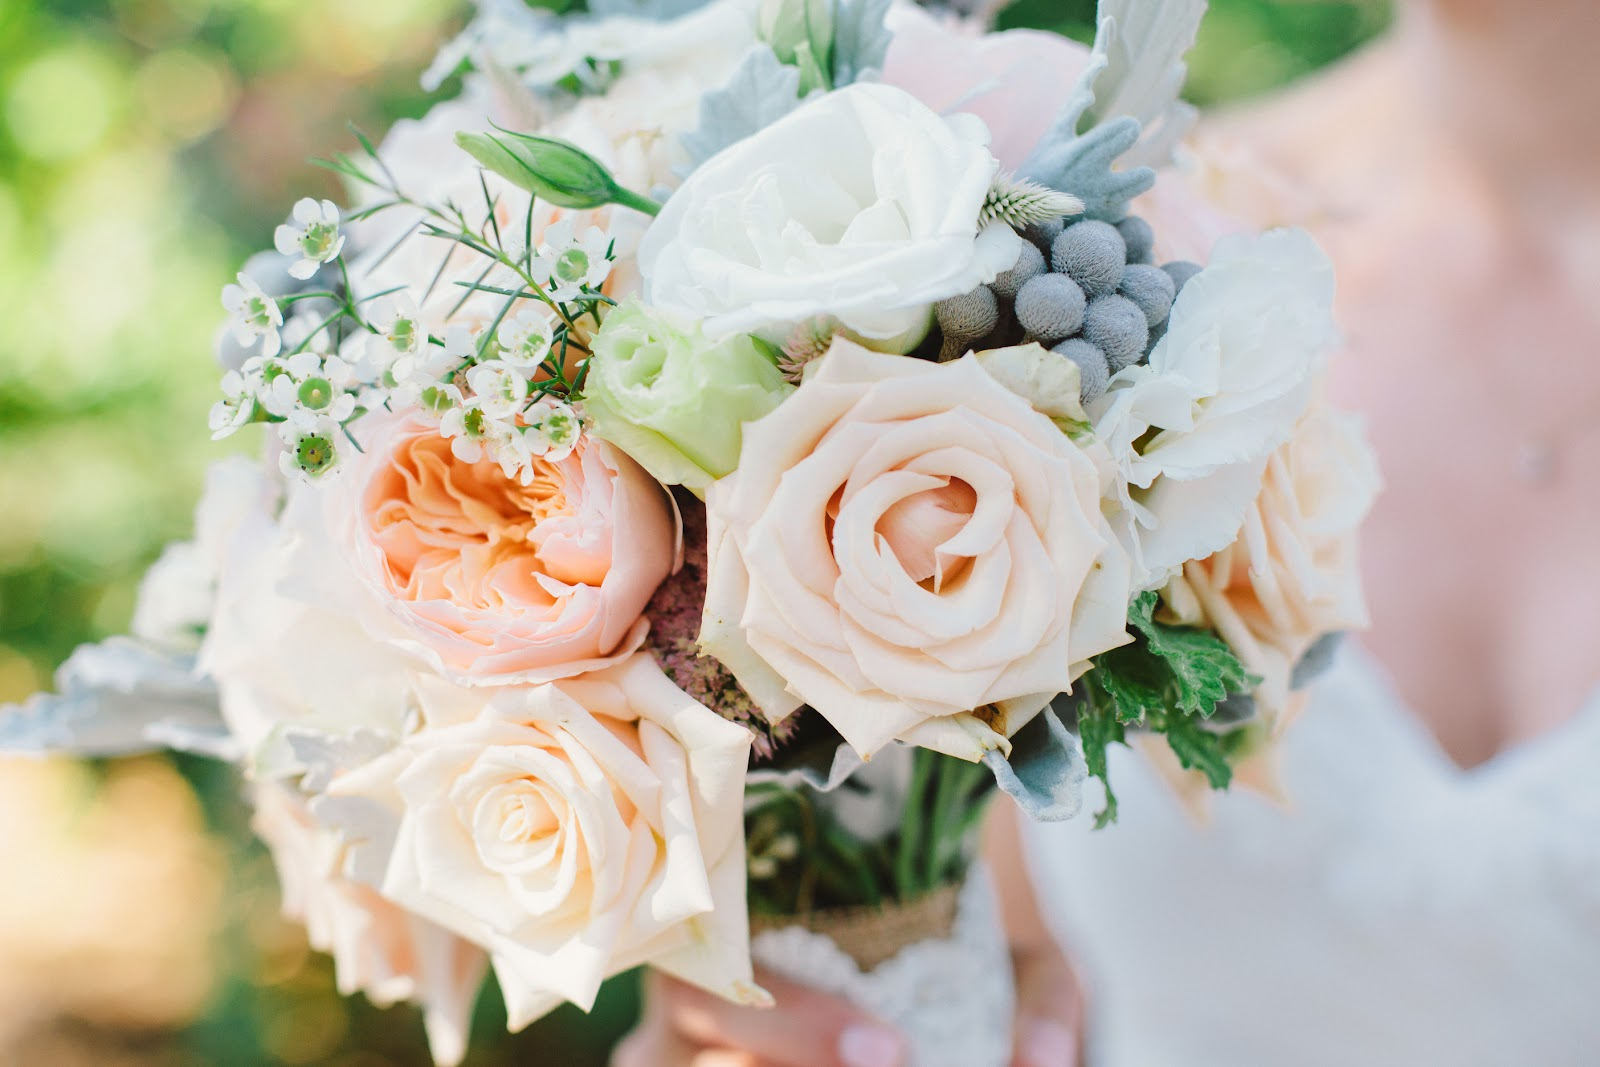 Peach Garden Rose wedding flowers from springwell: peach garden roses and silver